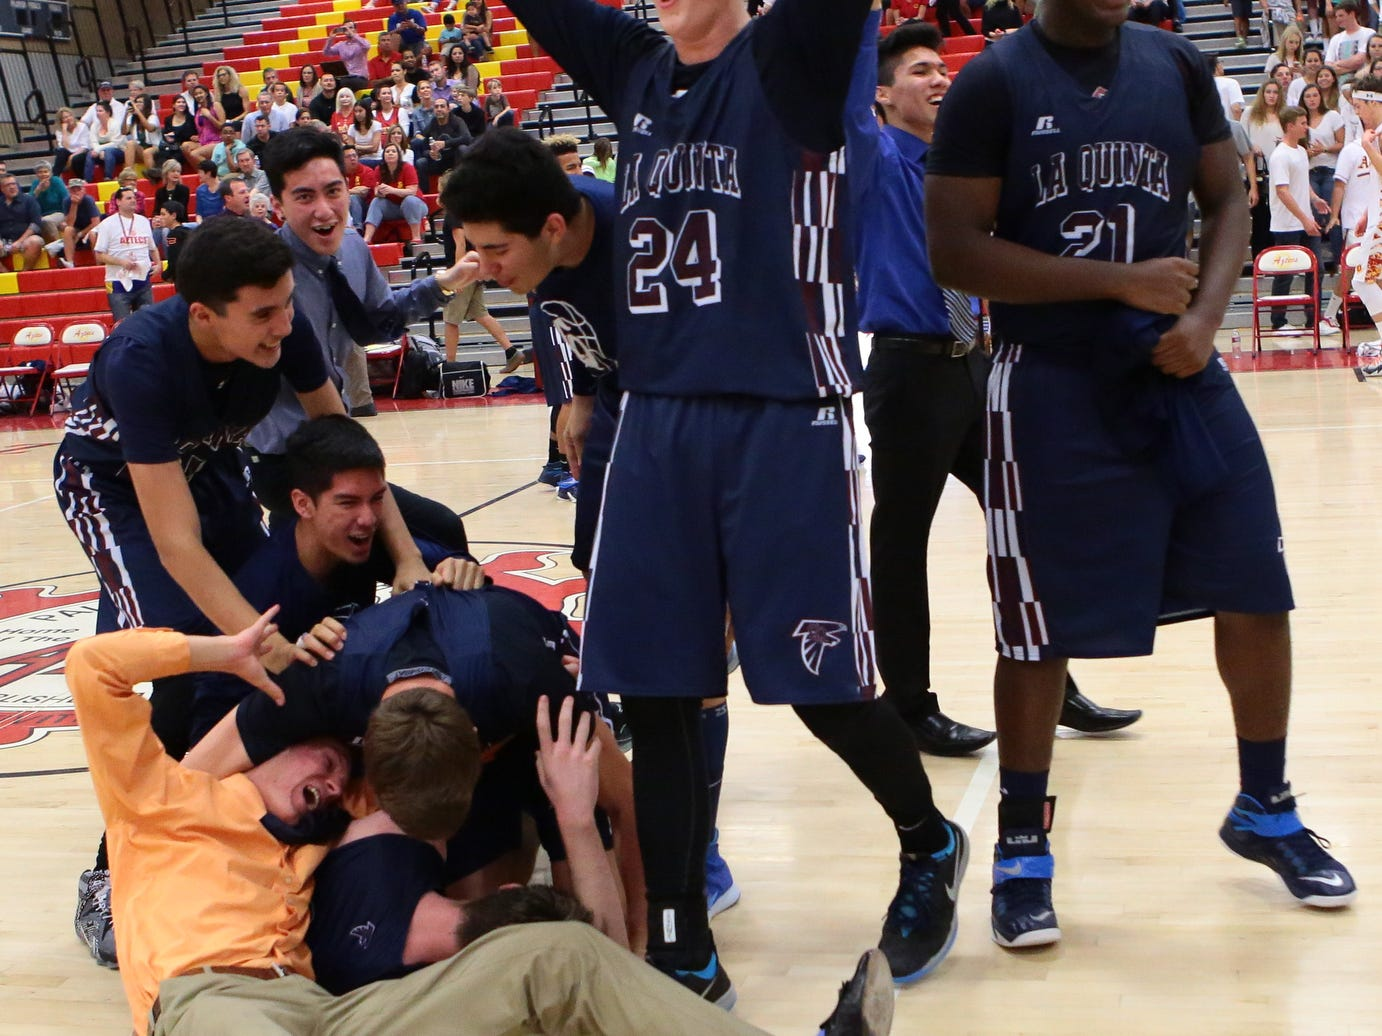 The La Quinta Blackhawks celebrate after beating rival Palm Desert Aztecs 57-50 and also win the Desert Valley League boys basketball title on Thursday, February 12, 2015 at Palm Desert.